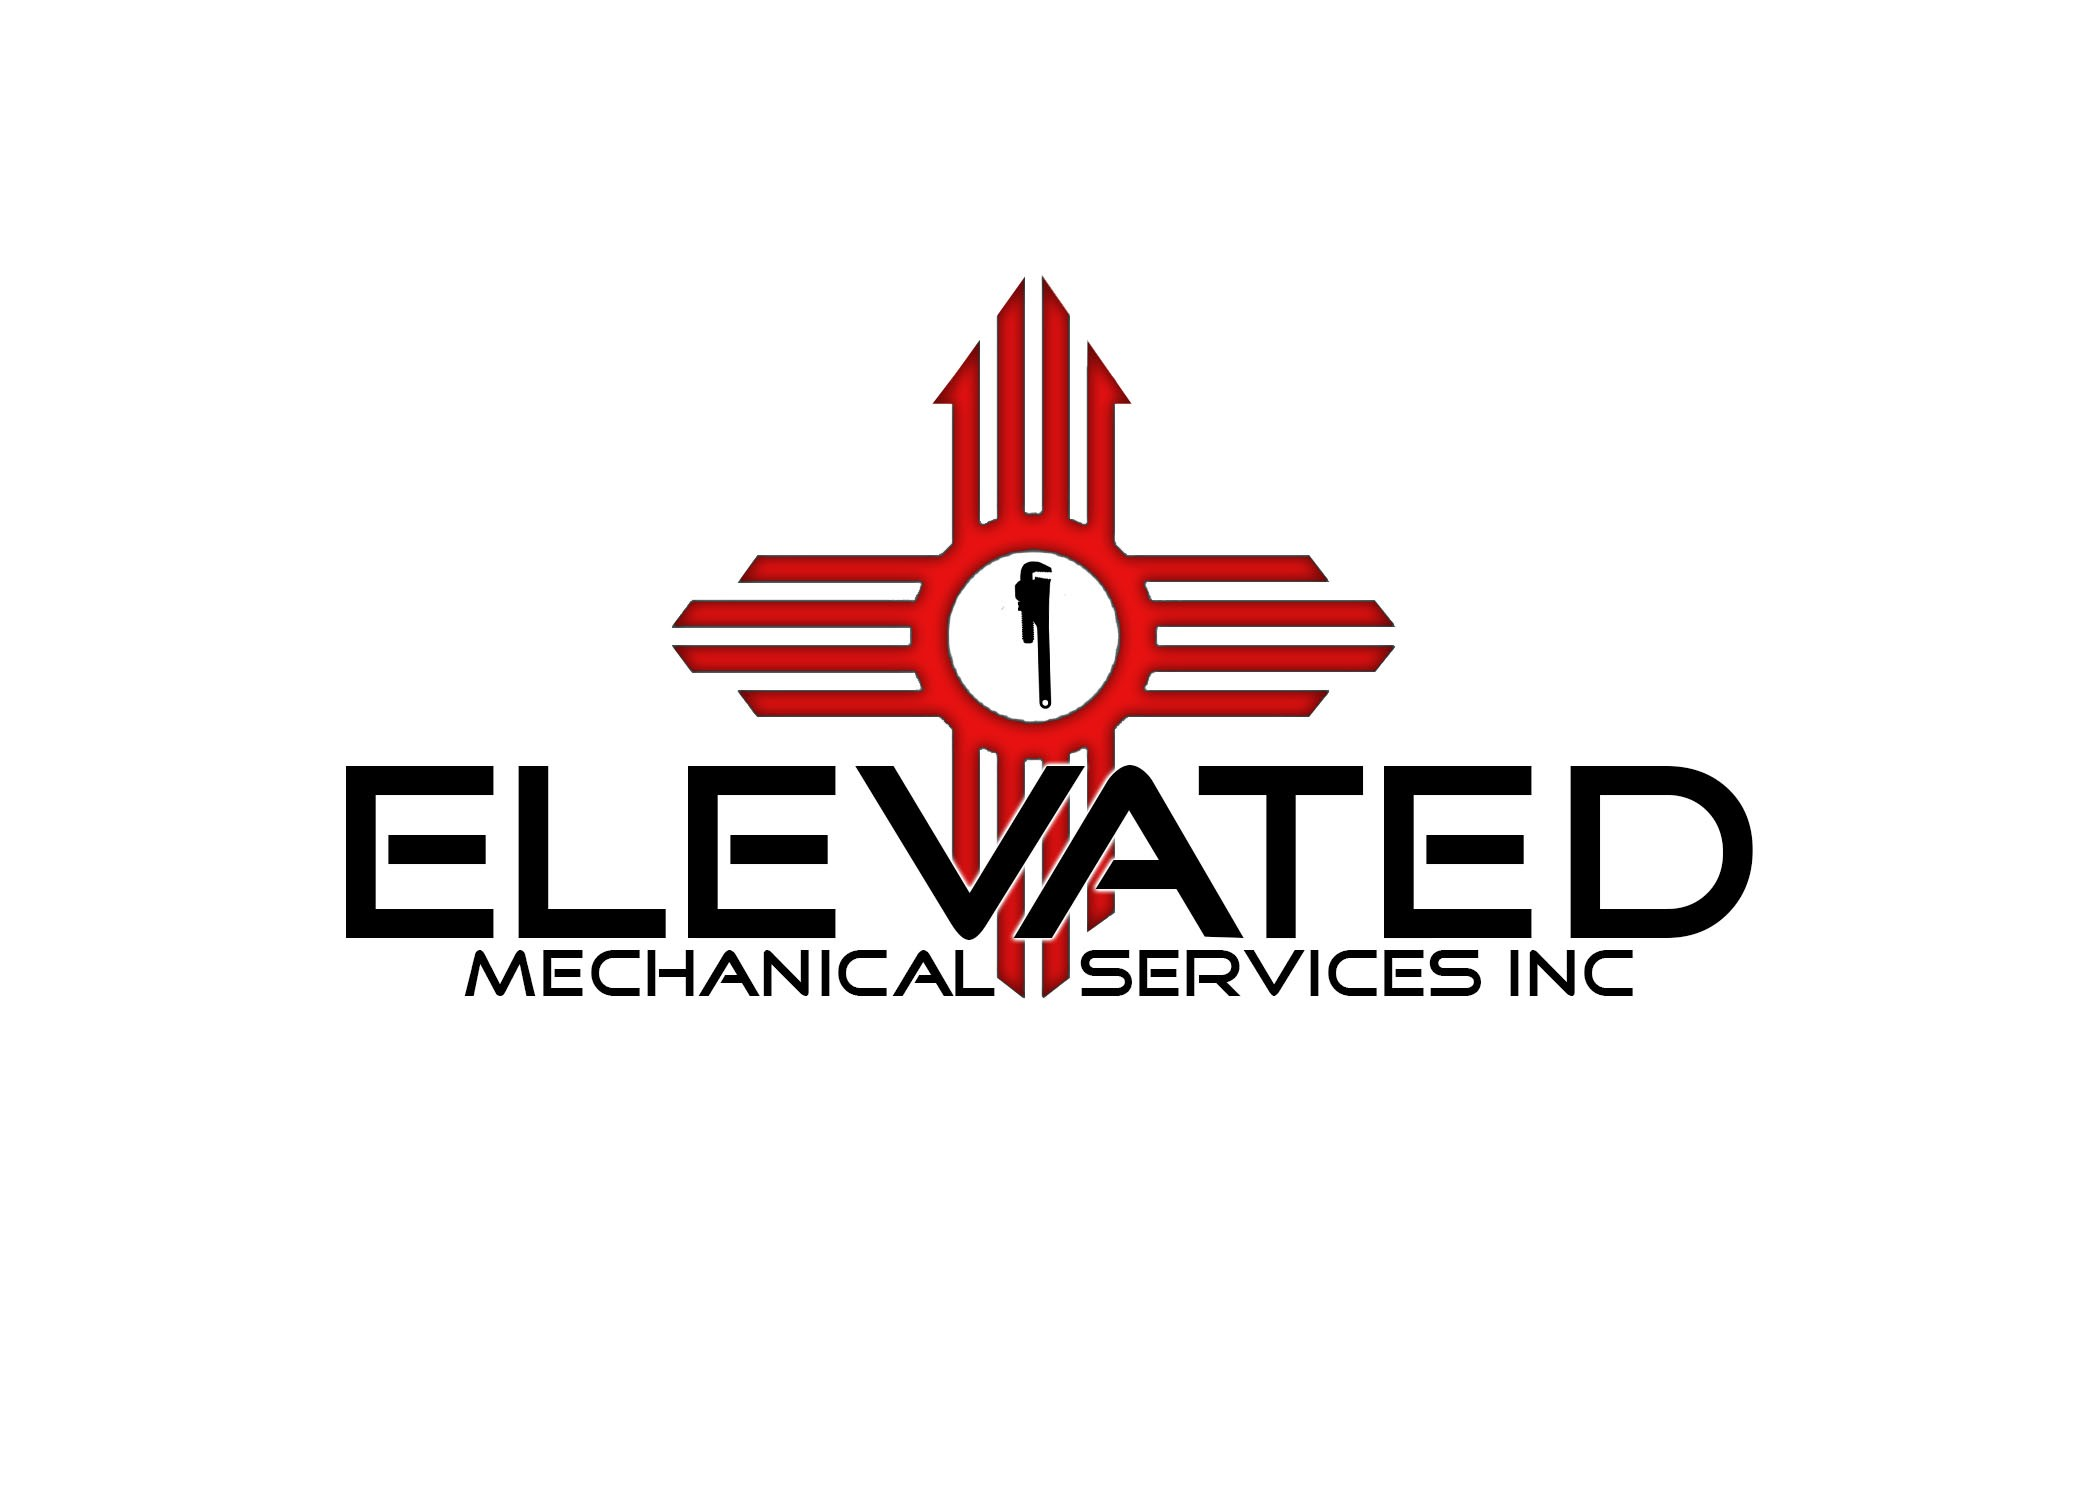 Elevated Mechanical Services Inc.